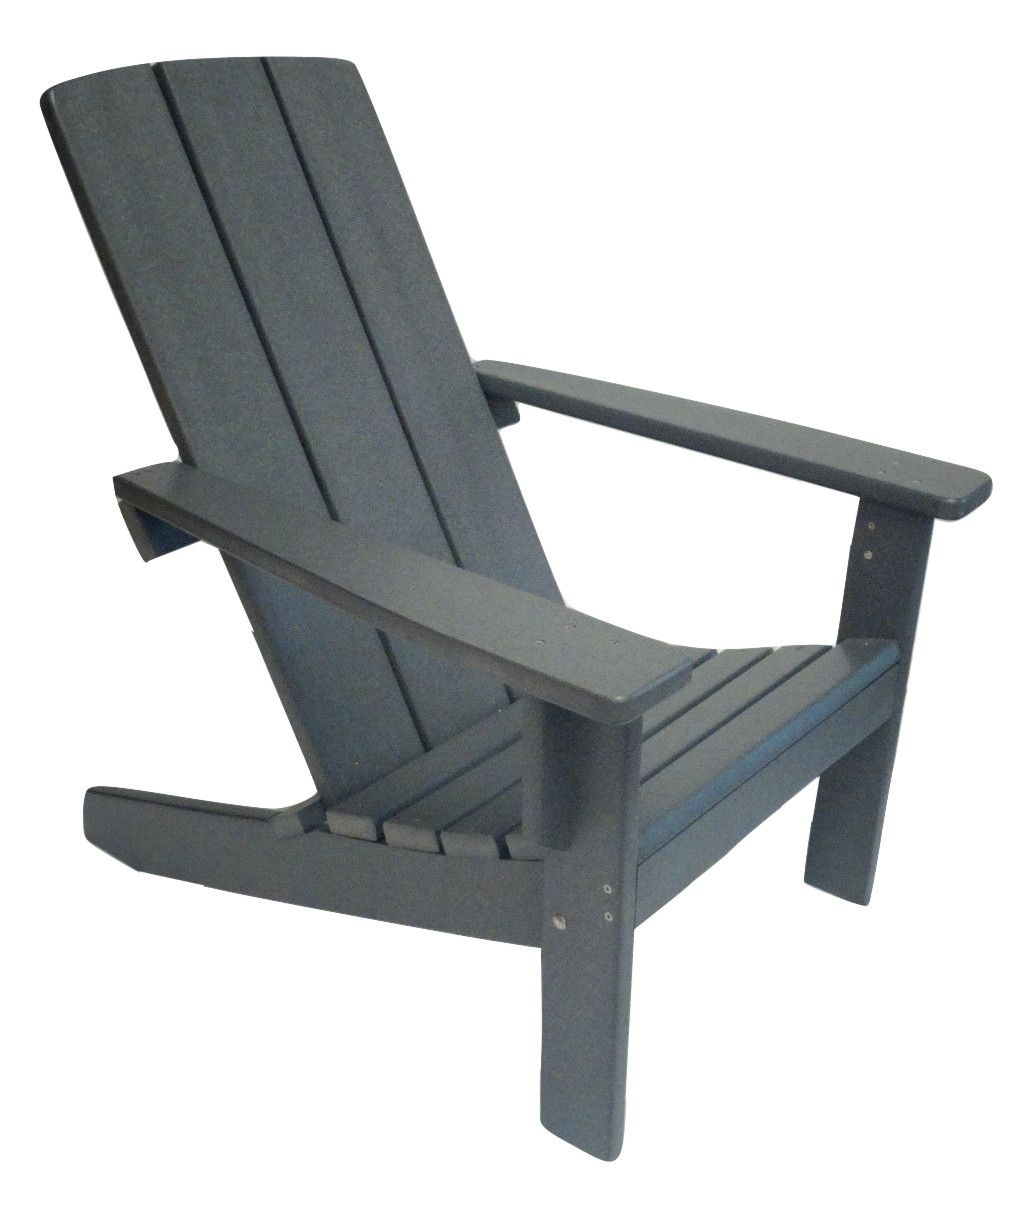 Gartenstuhl Metall Modern Casual Modern Adirondack Chair Work It Adirondack Stühle